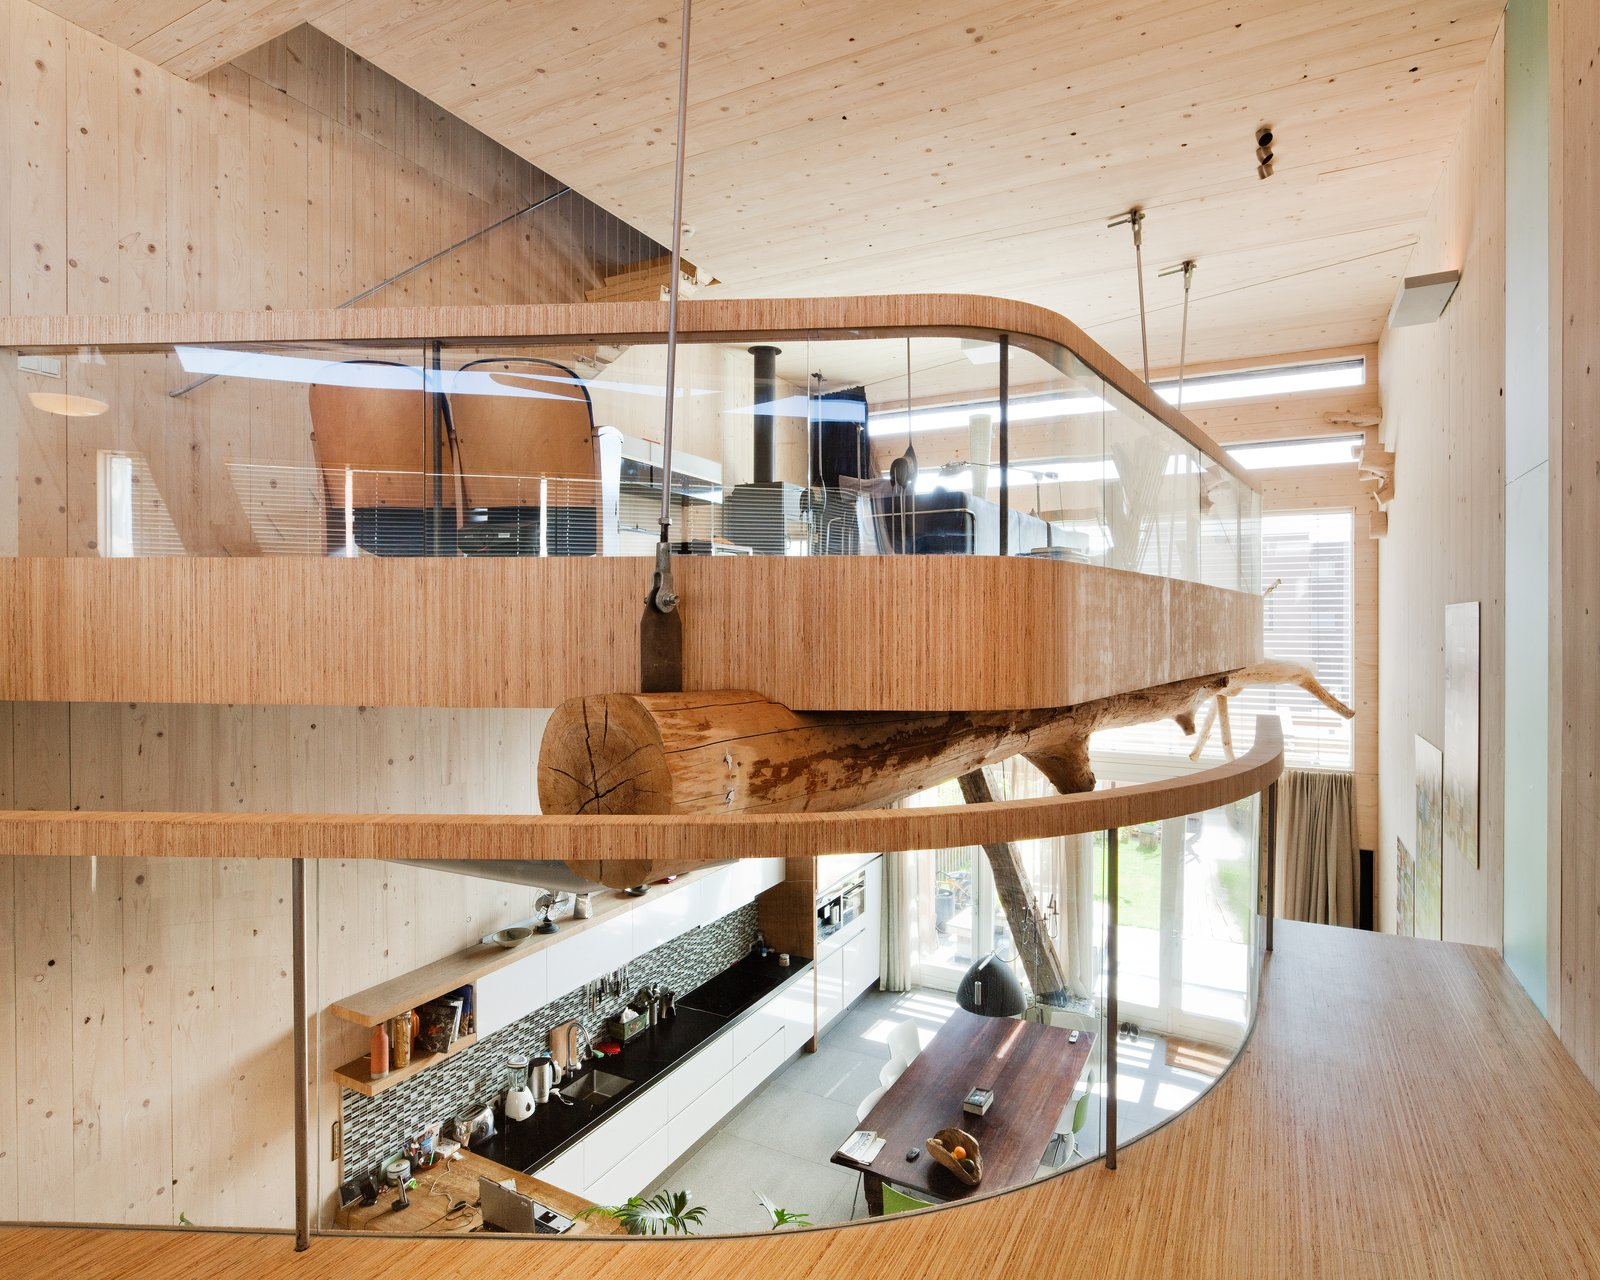 The living room is located on the split-level second floor balcony, held up by the tree trunk and secure poles. The kitchen can be seen below.  Photo 3 of 5 in A Passive House in the Netherlands Embodies 5 Tips to Consider When Planning Your Own